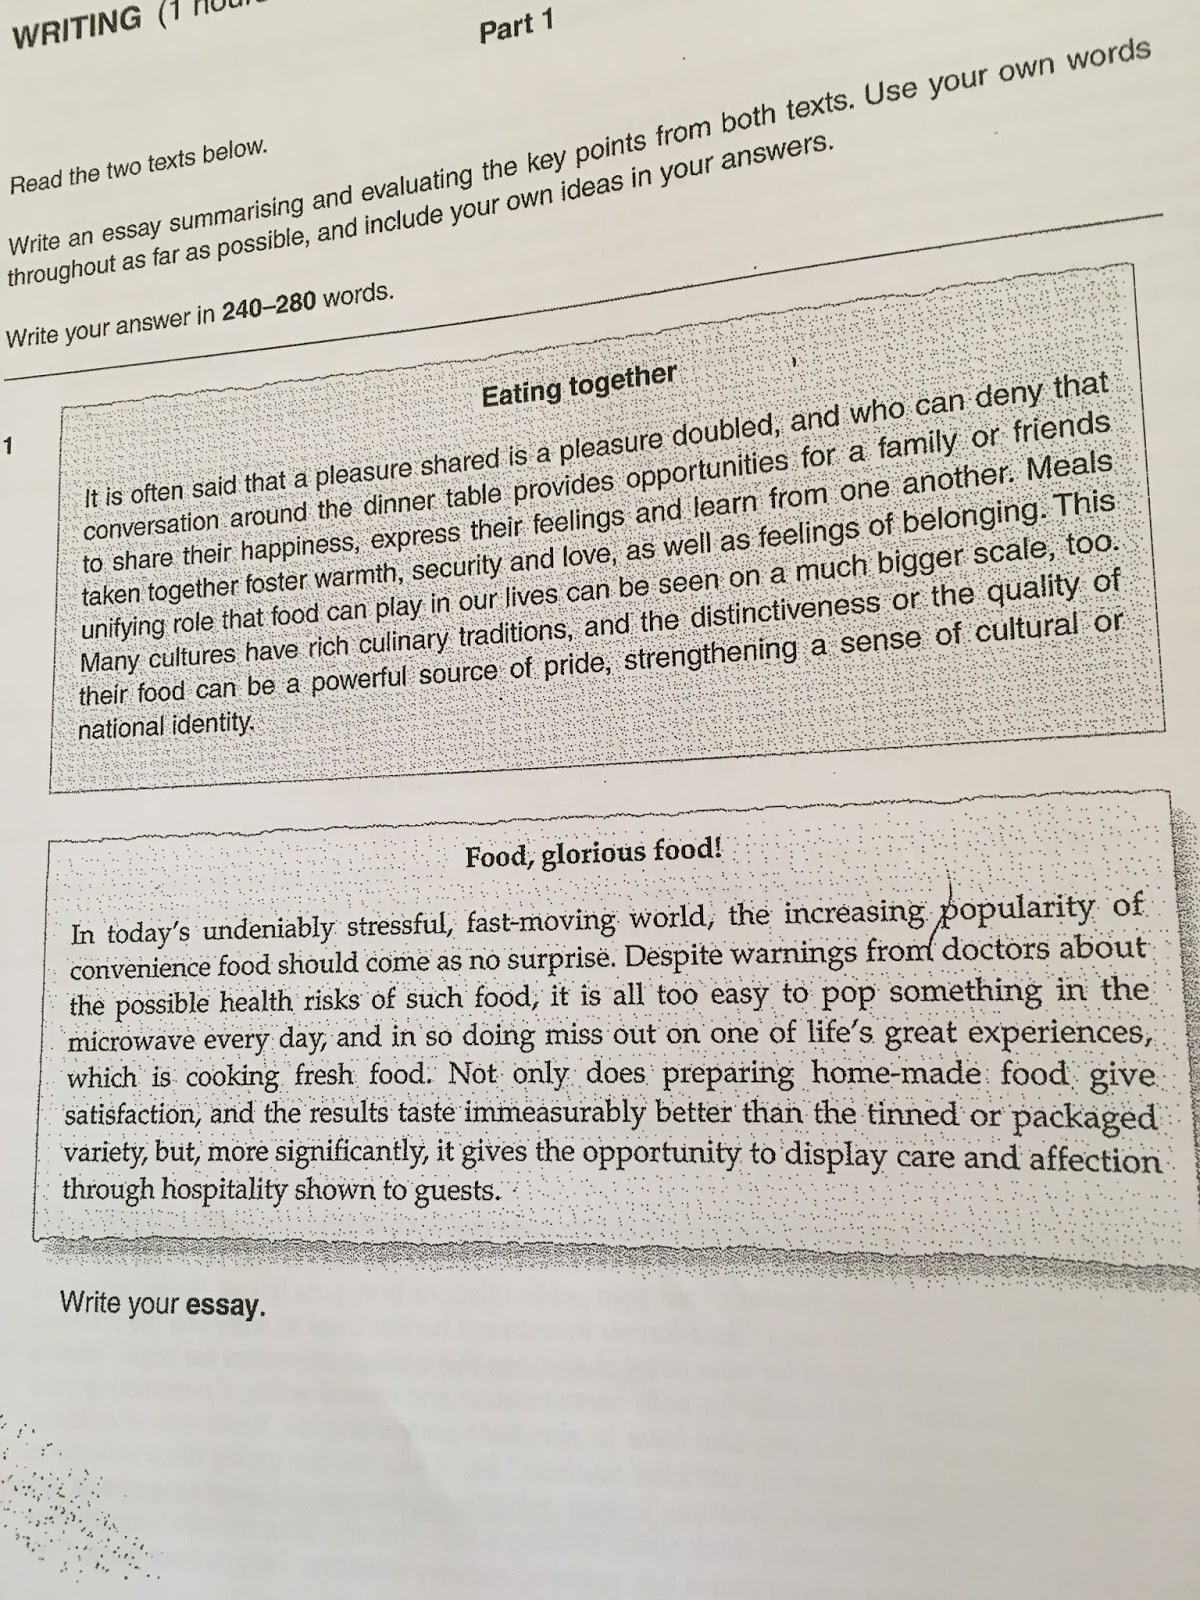 sample essay writings Essay examples would vary according to the type of essay you wish to write four kinds of essays exist including: narration, description, exposition, and argument.